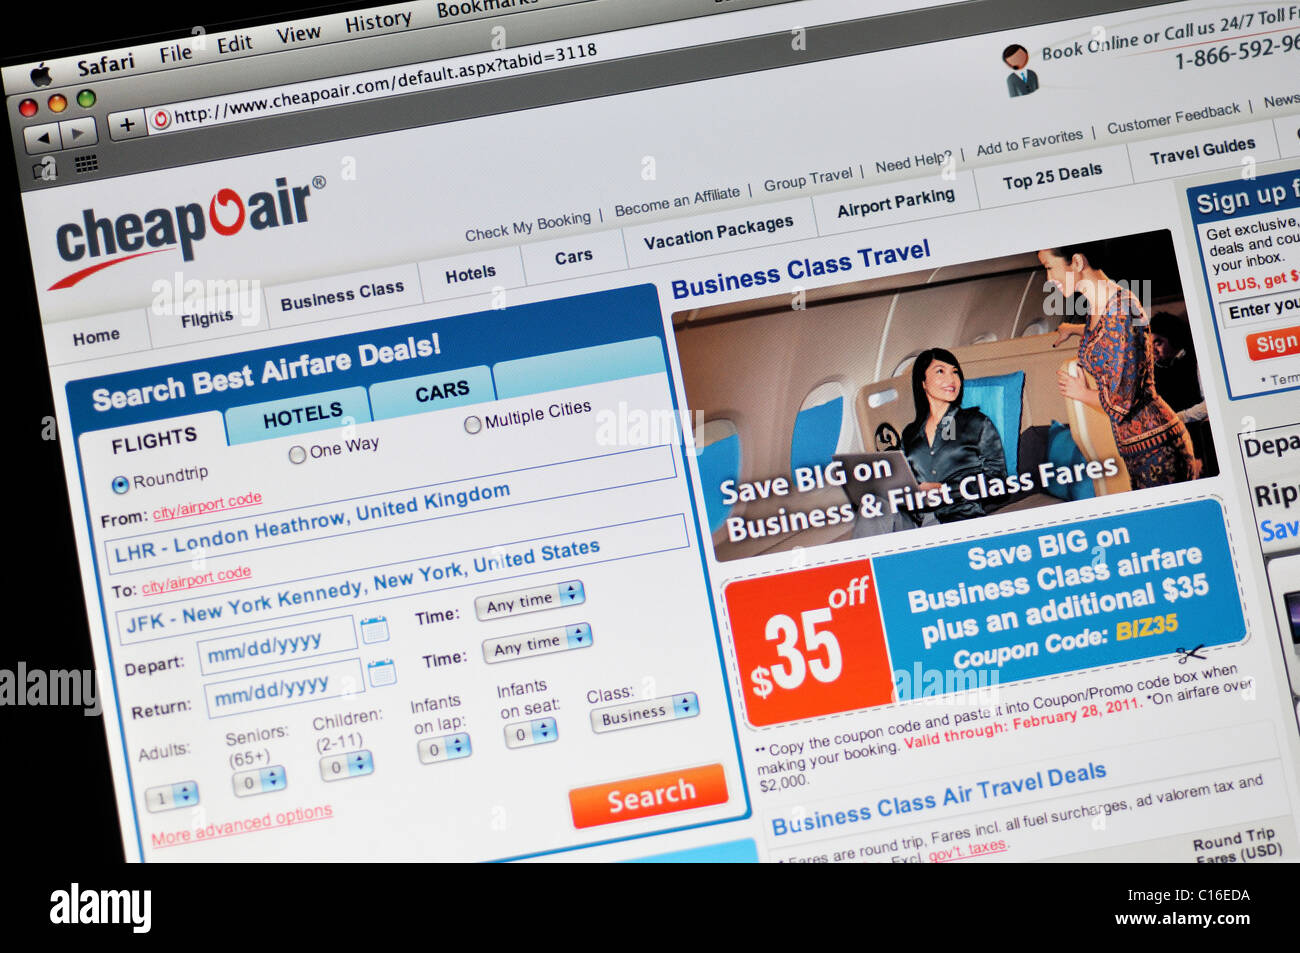 Cheapoair website - cheap airfare and deals - Stock Image